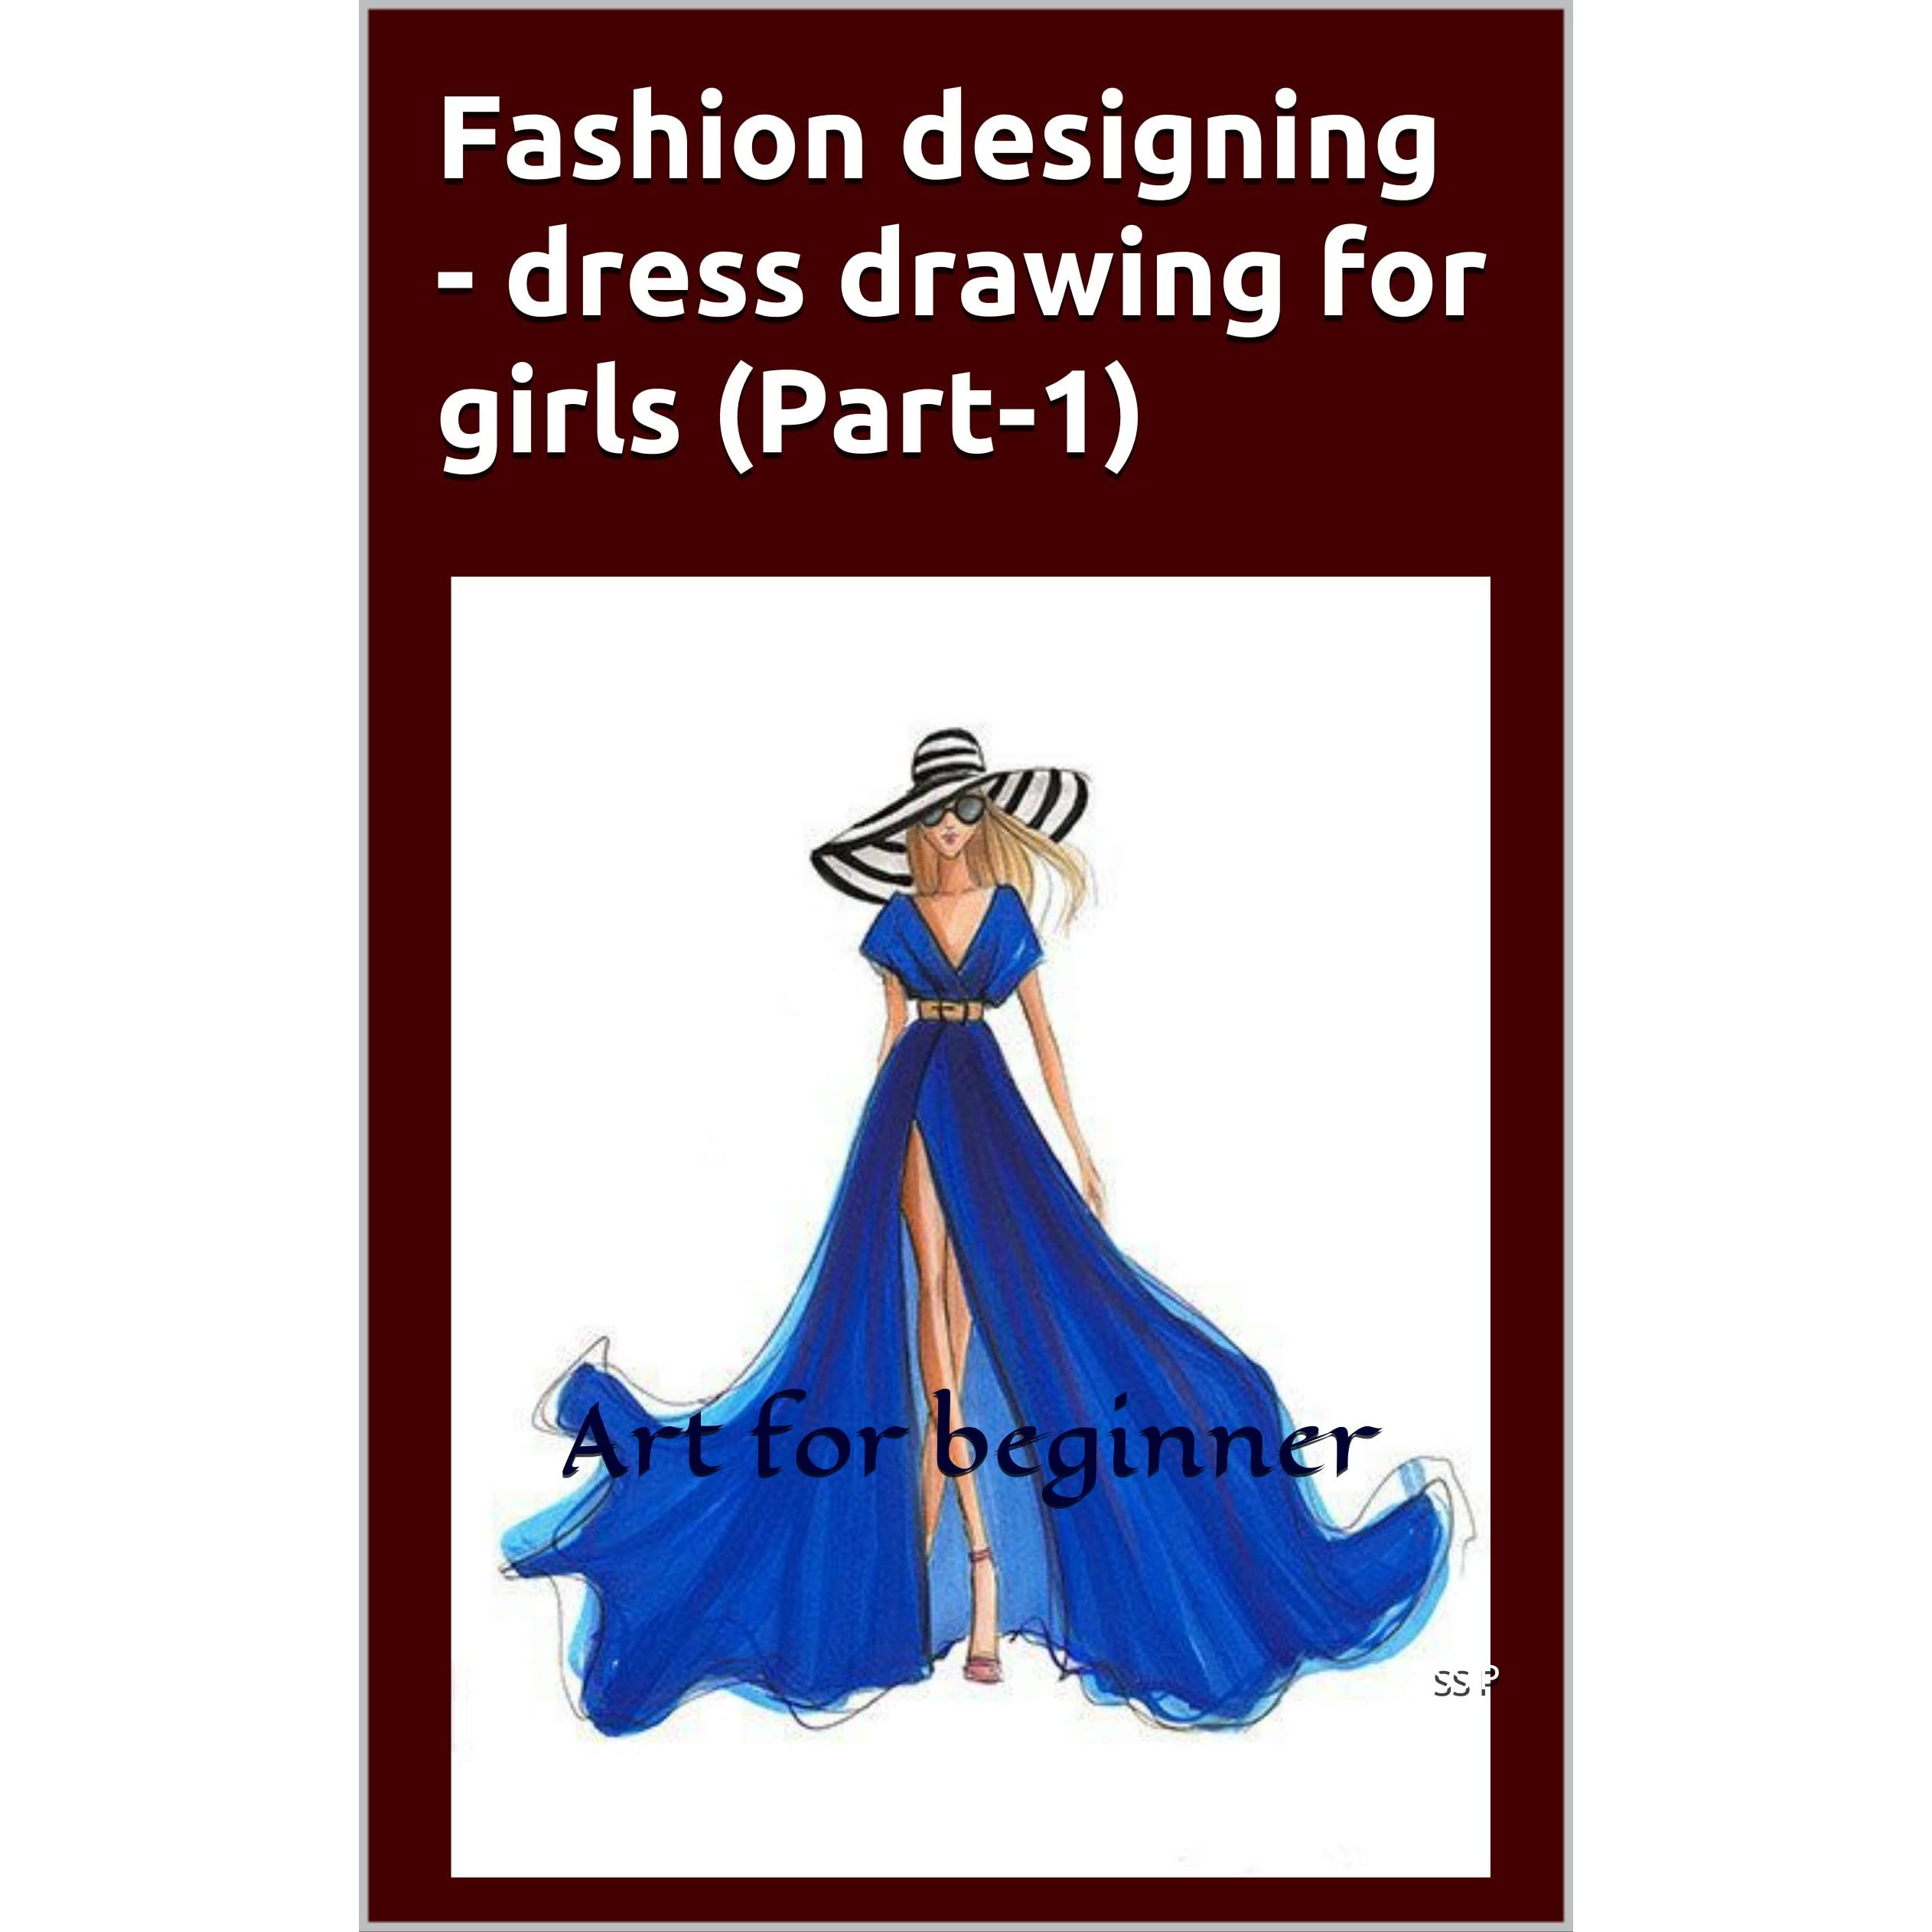 Fashion Designing Dress Drawing For Girls Part 1 Art For Beginner By Ss P